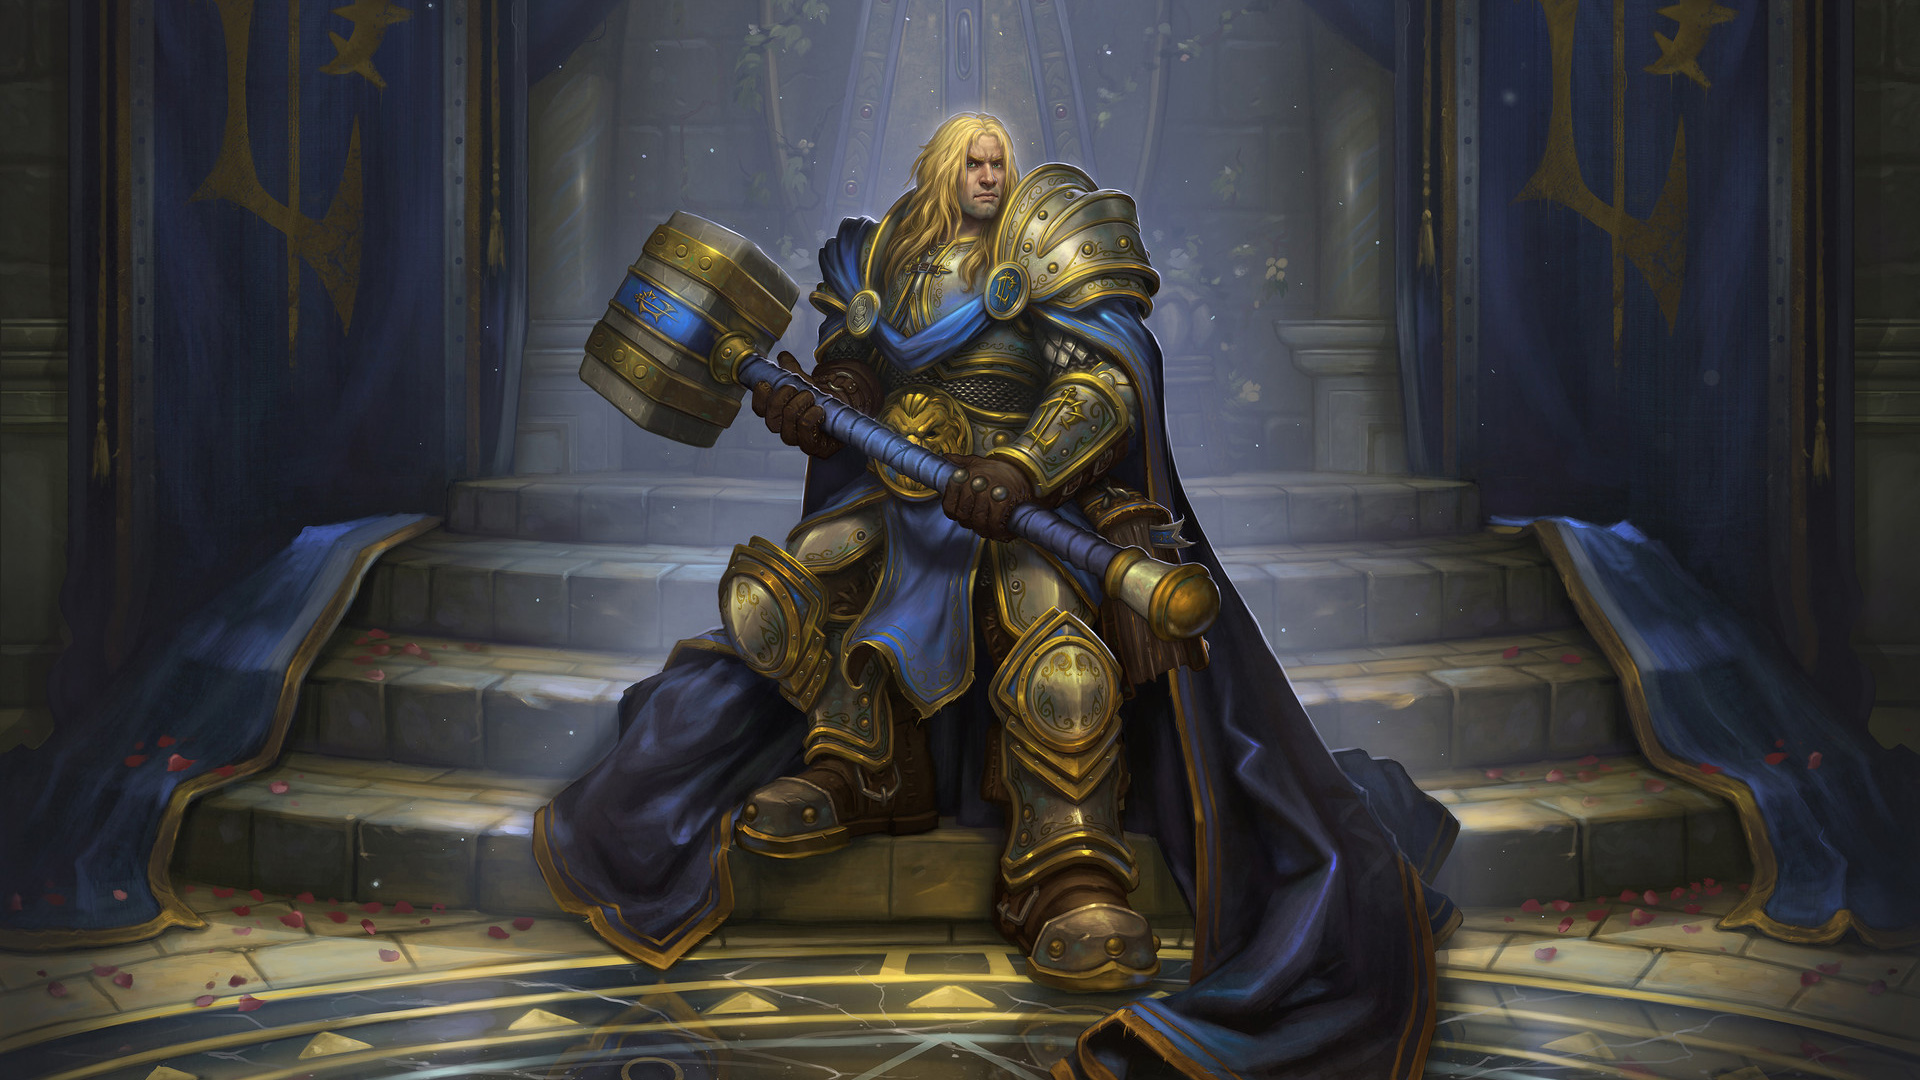 Knights of the Frozen Throne Wallpapers - Hearthstone Top ...